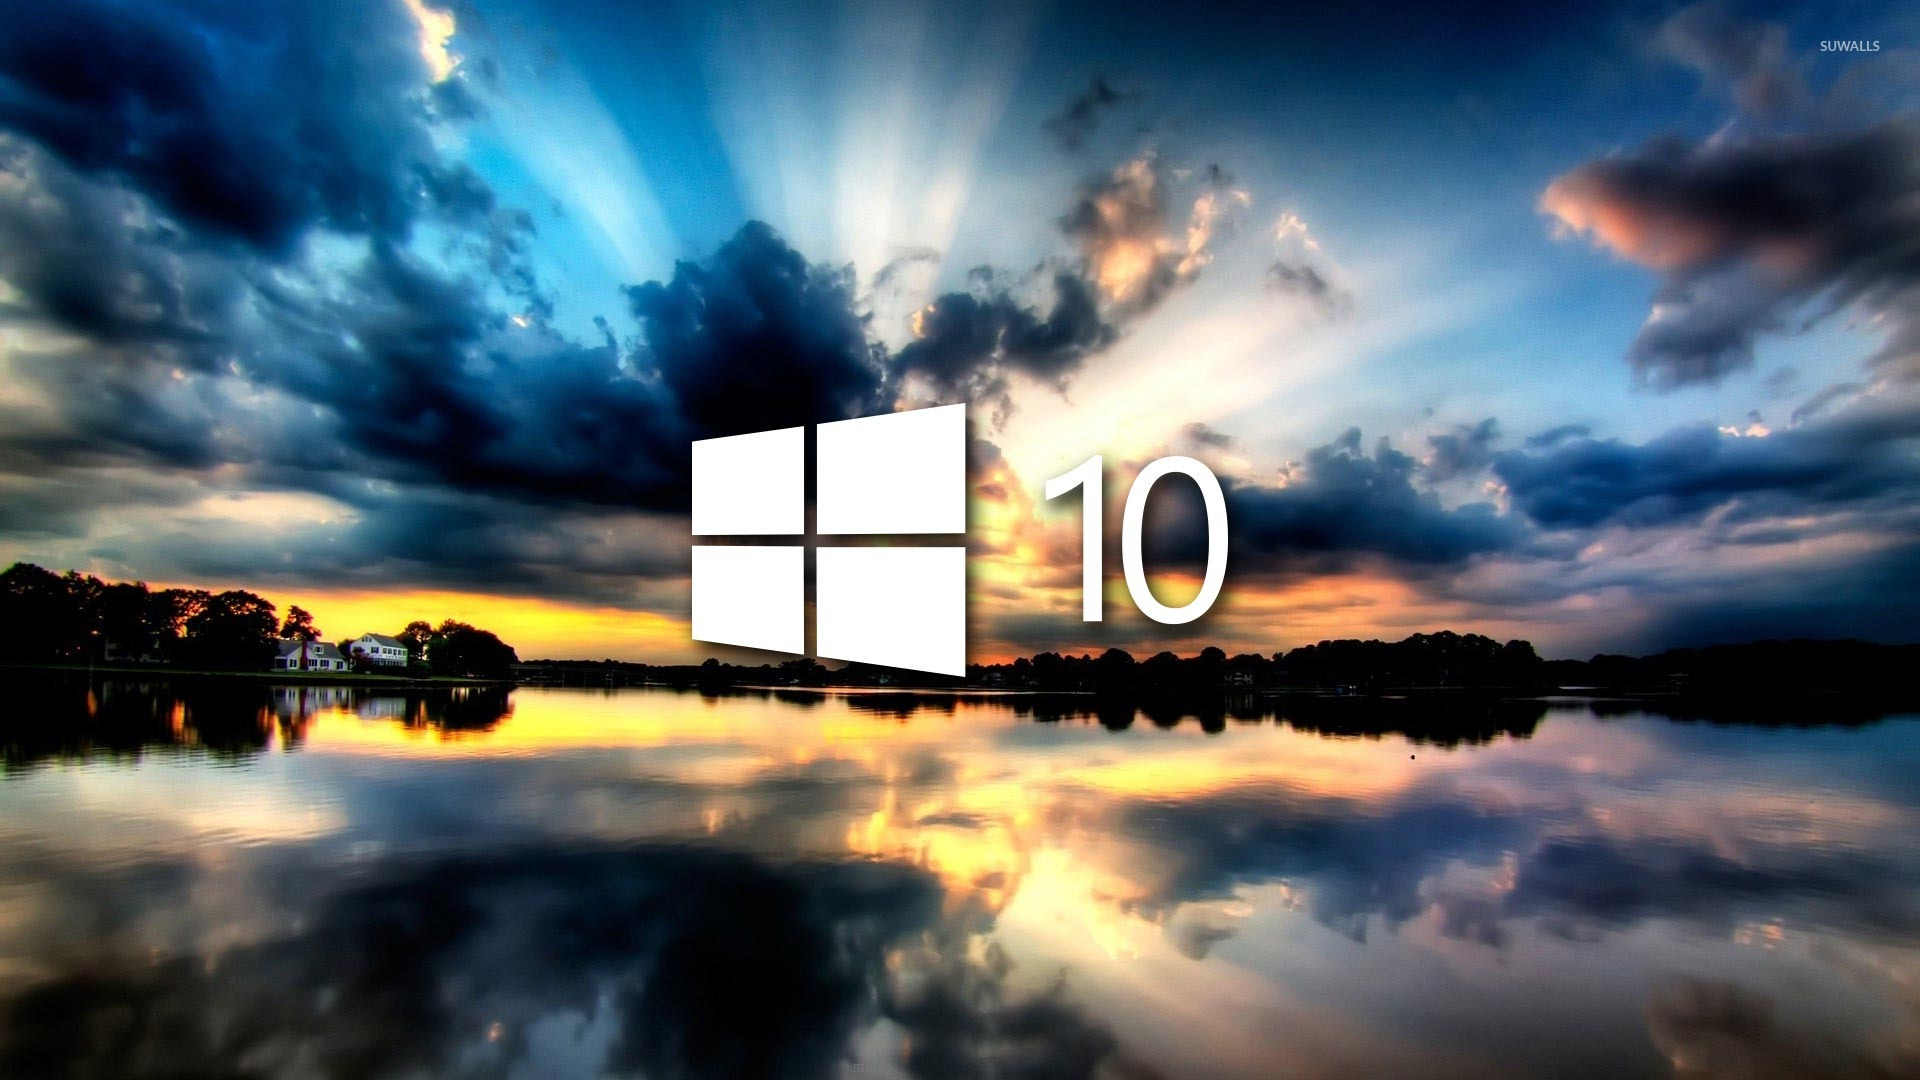 Windows 10 On The Reflected Clouds 48046 1920×1080 Wallpaper